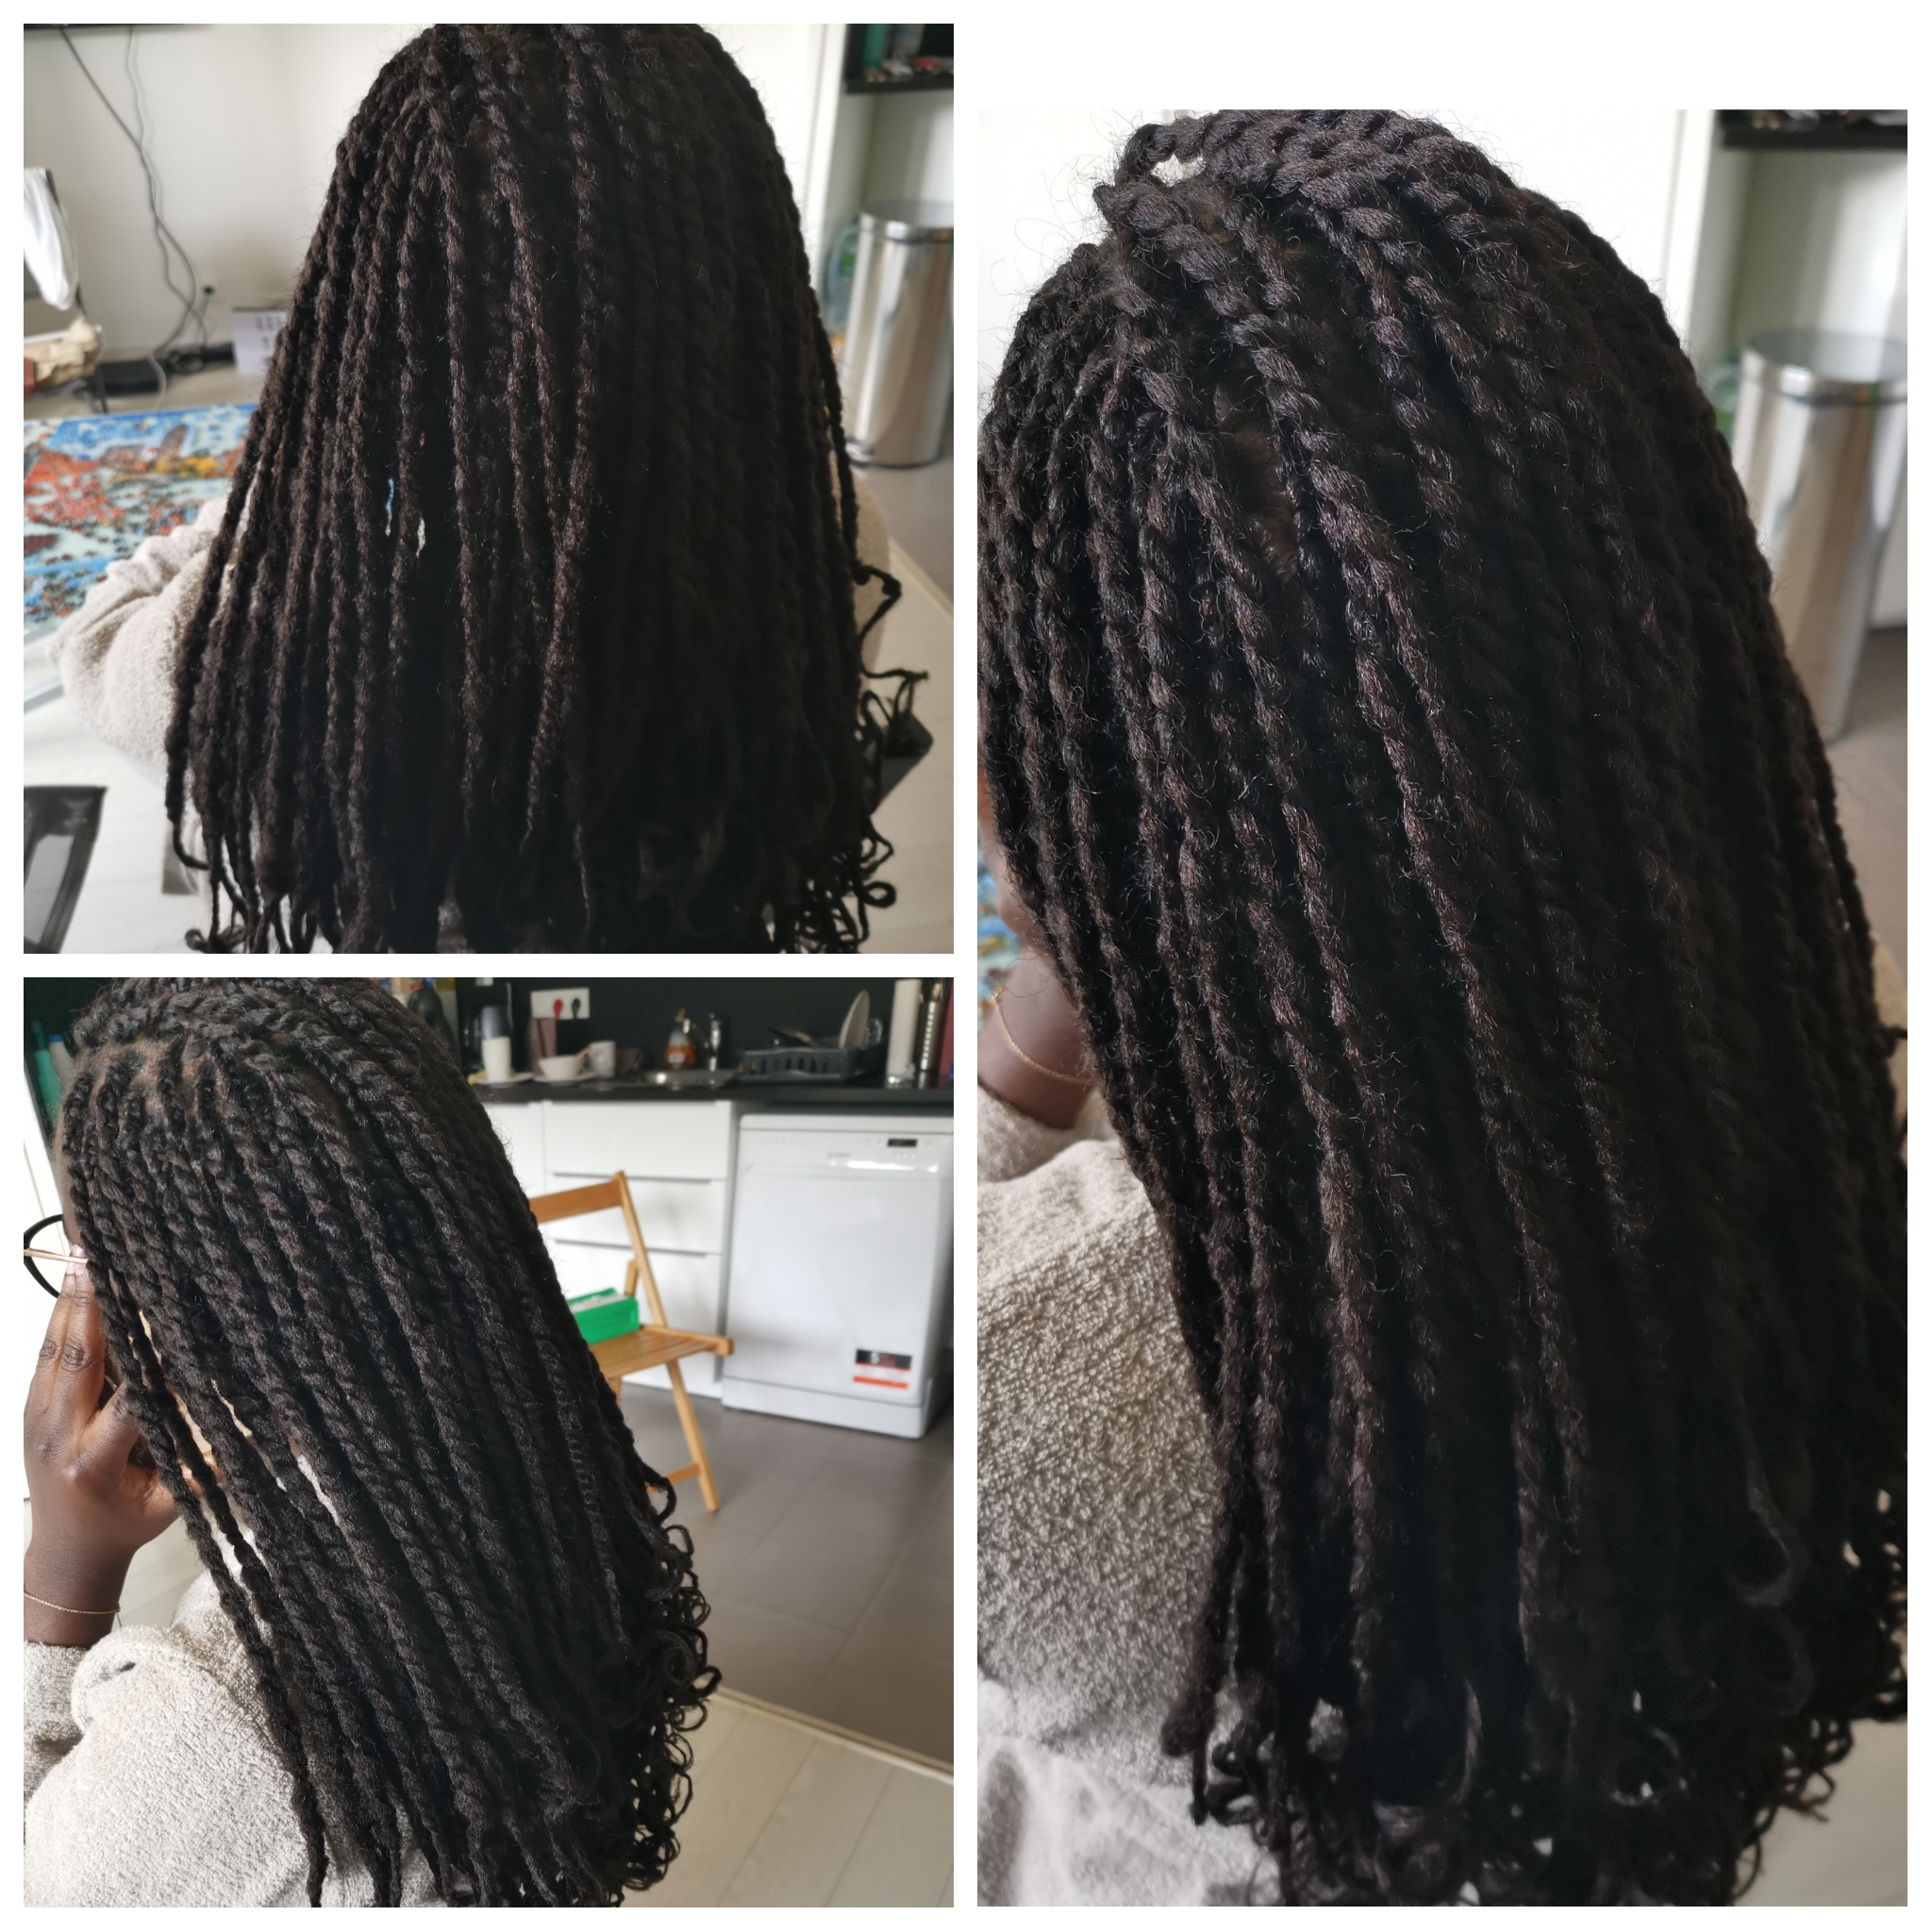 salon de coiffure afro tresse tresses box braids crochet braids vanilles tissages paris 75 77 78 91 92 93 94 95 HCHFBSTV